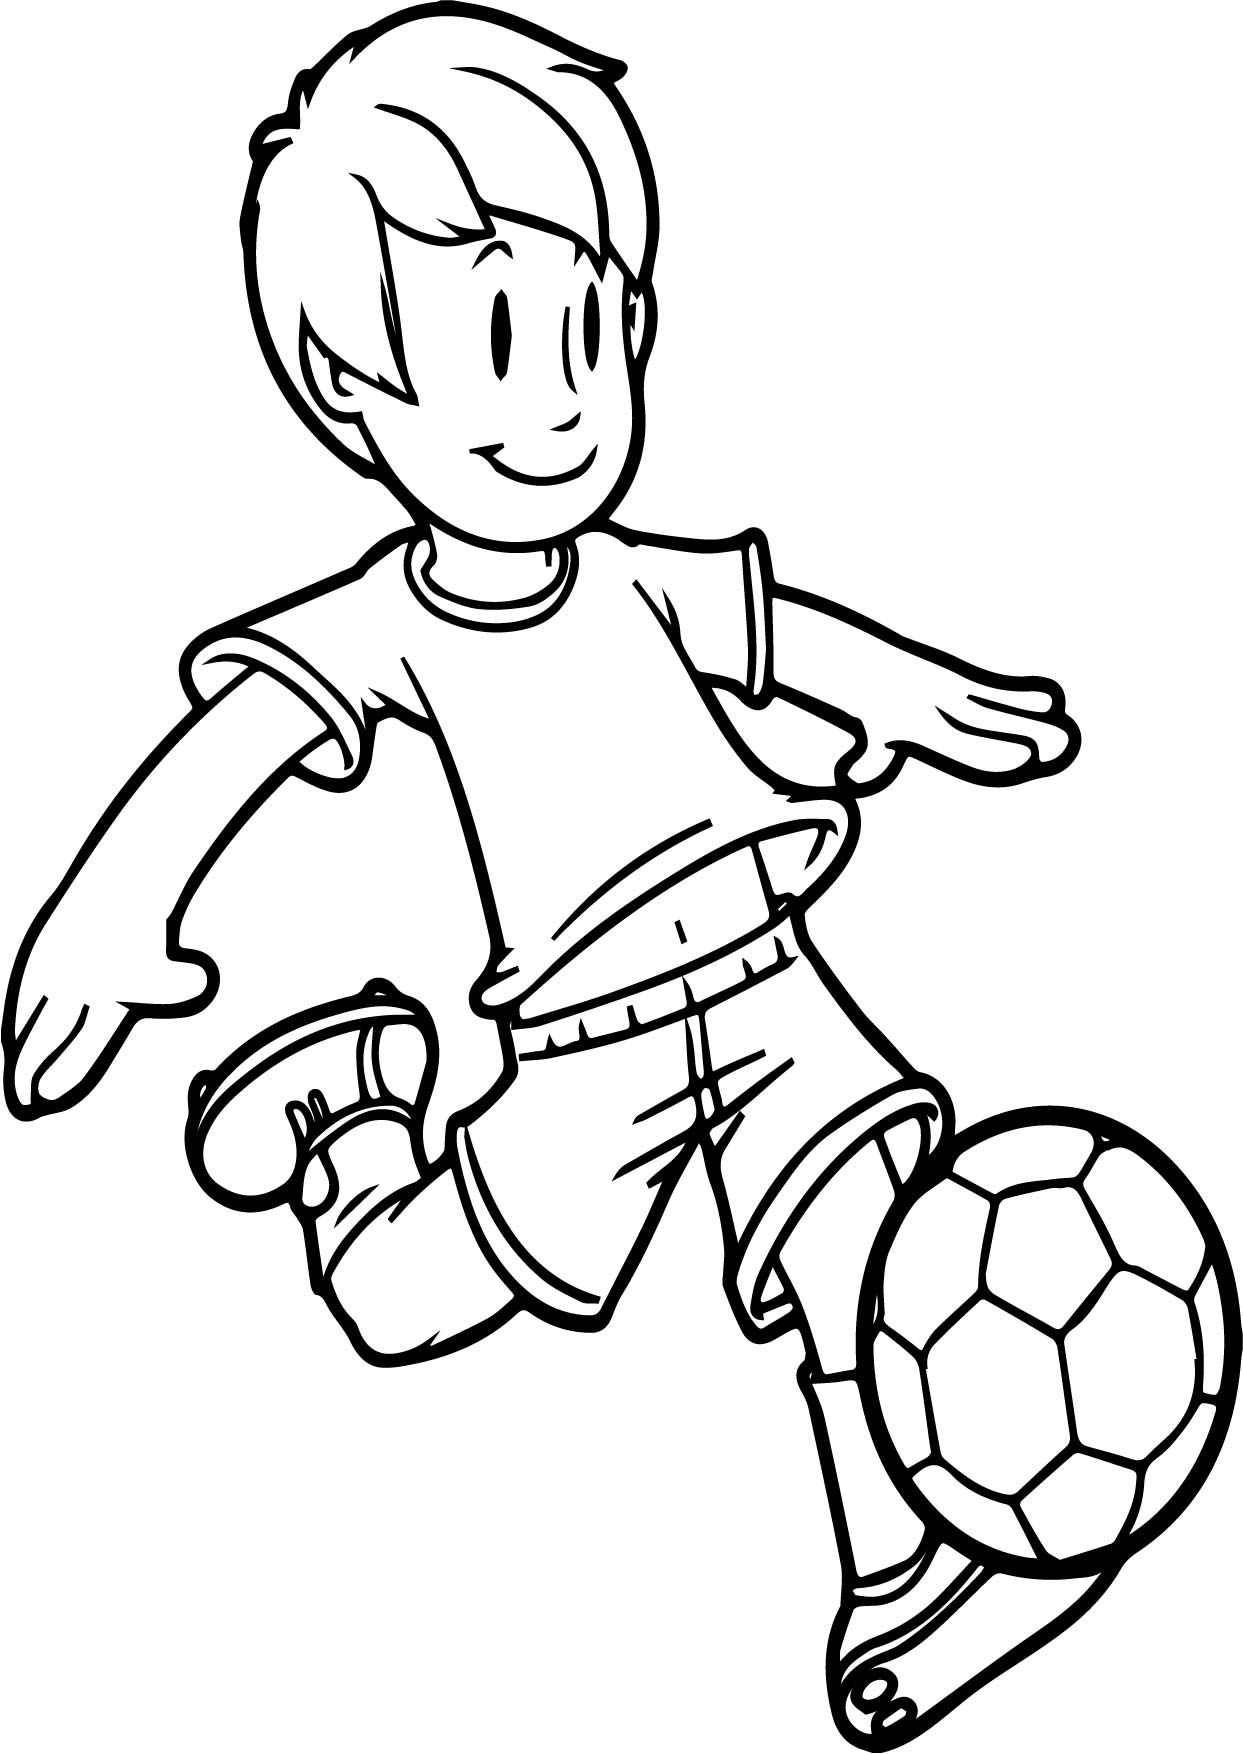 Cartoon Boy Playing Soccer Kid Ball On Easy Coloring Page